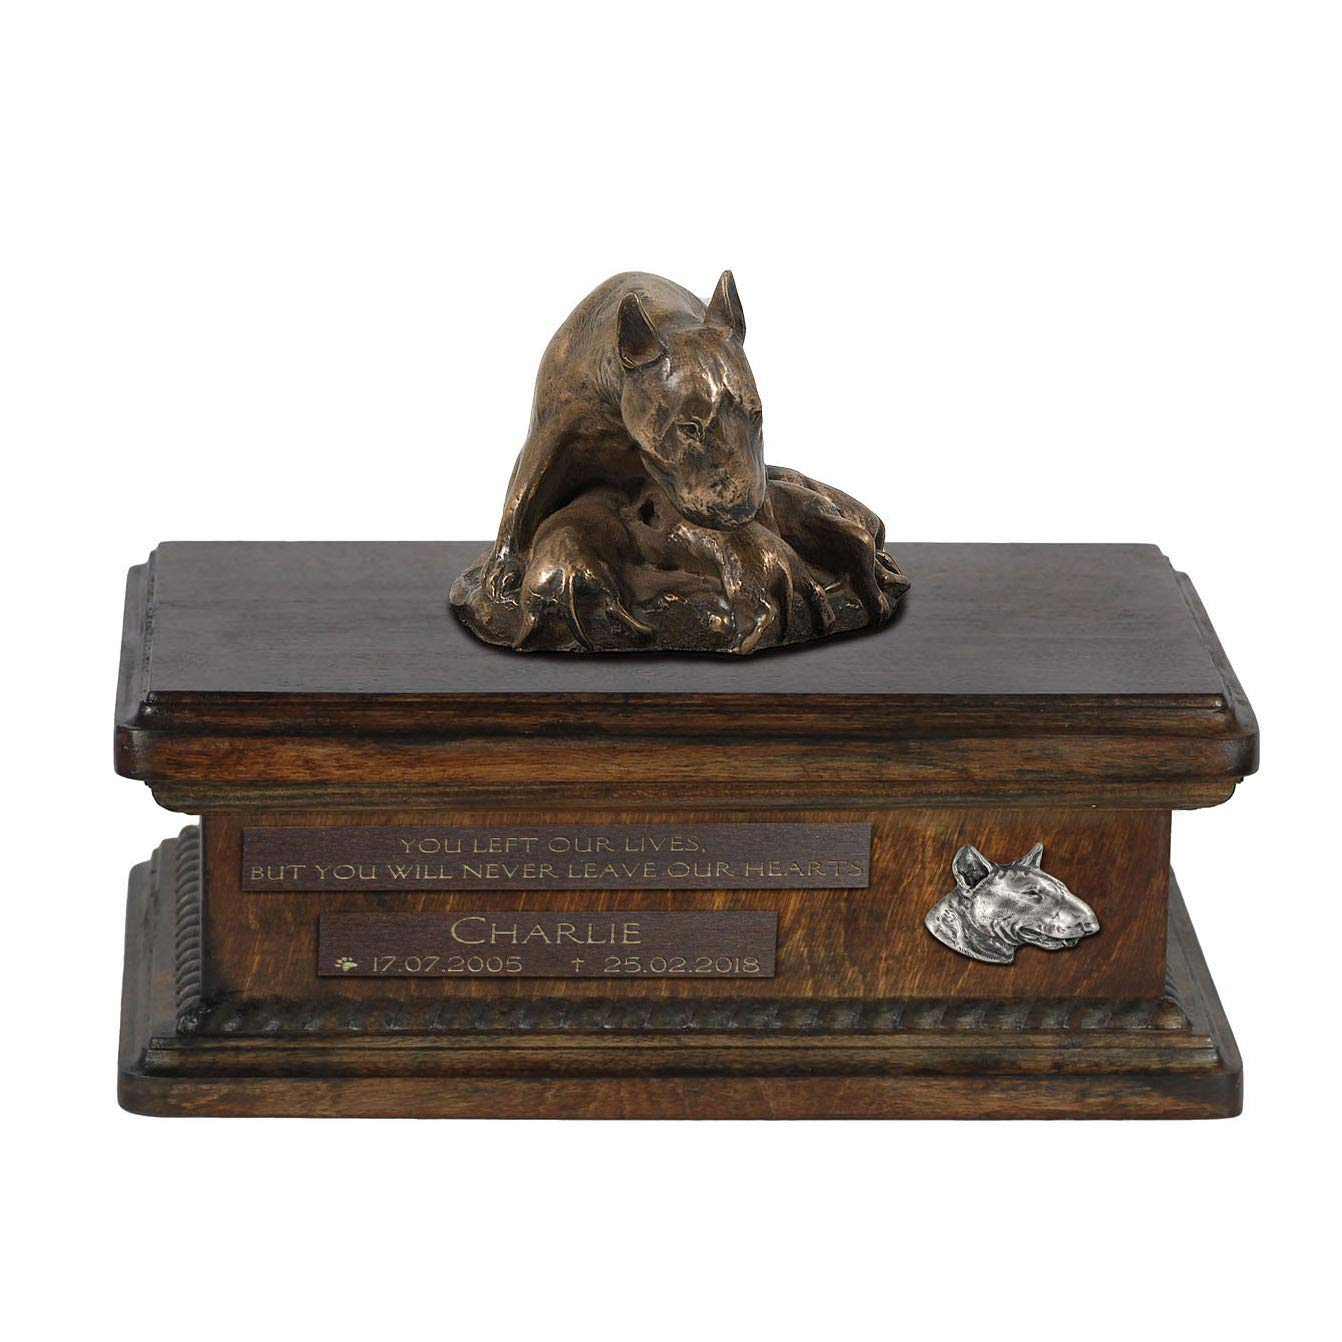 Bull Terrier mama 2, Urn for Dog Ashes Memorial with Statue, Pet's Name and Quote ArtDog Personalized